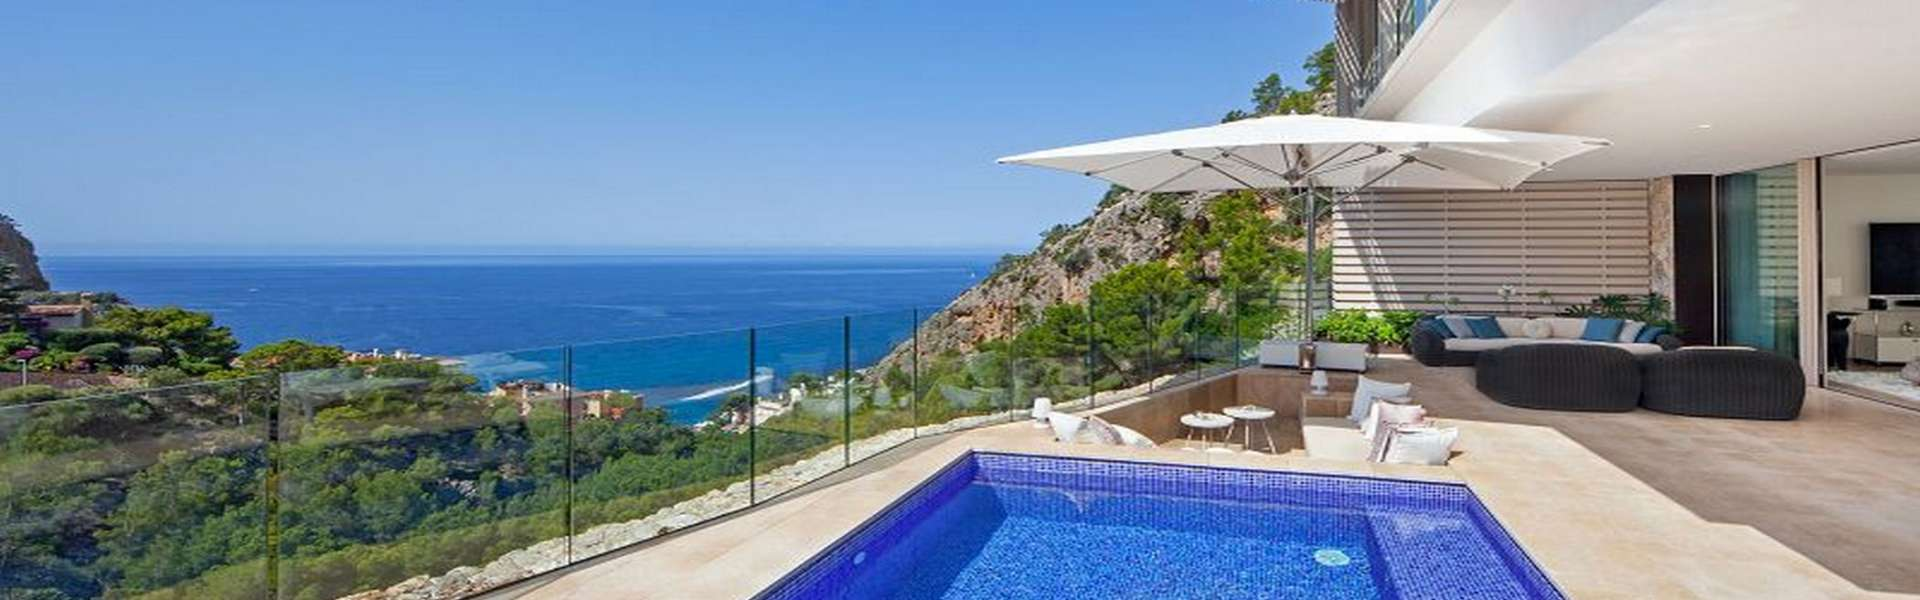 Port d'Andratx/Cala Llamp - Luxury semi-detached house in an exclusive complex